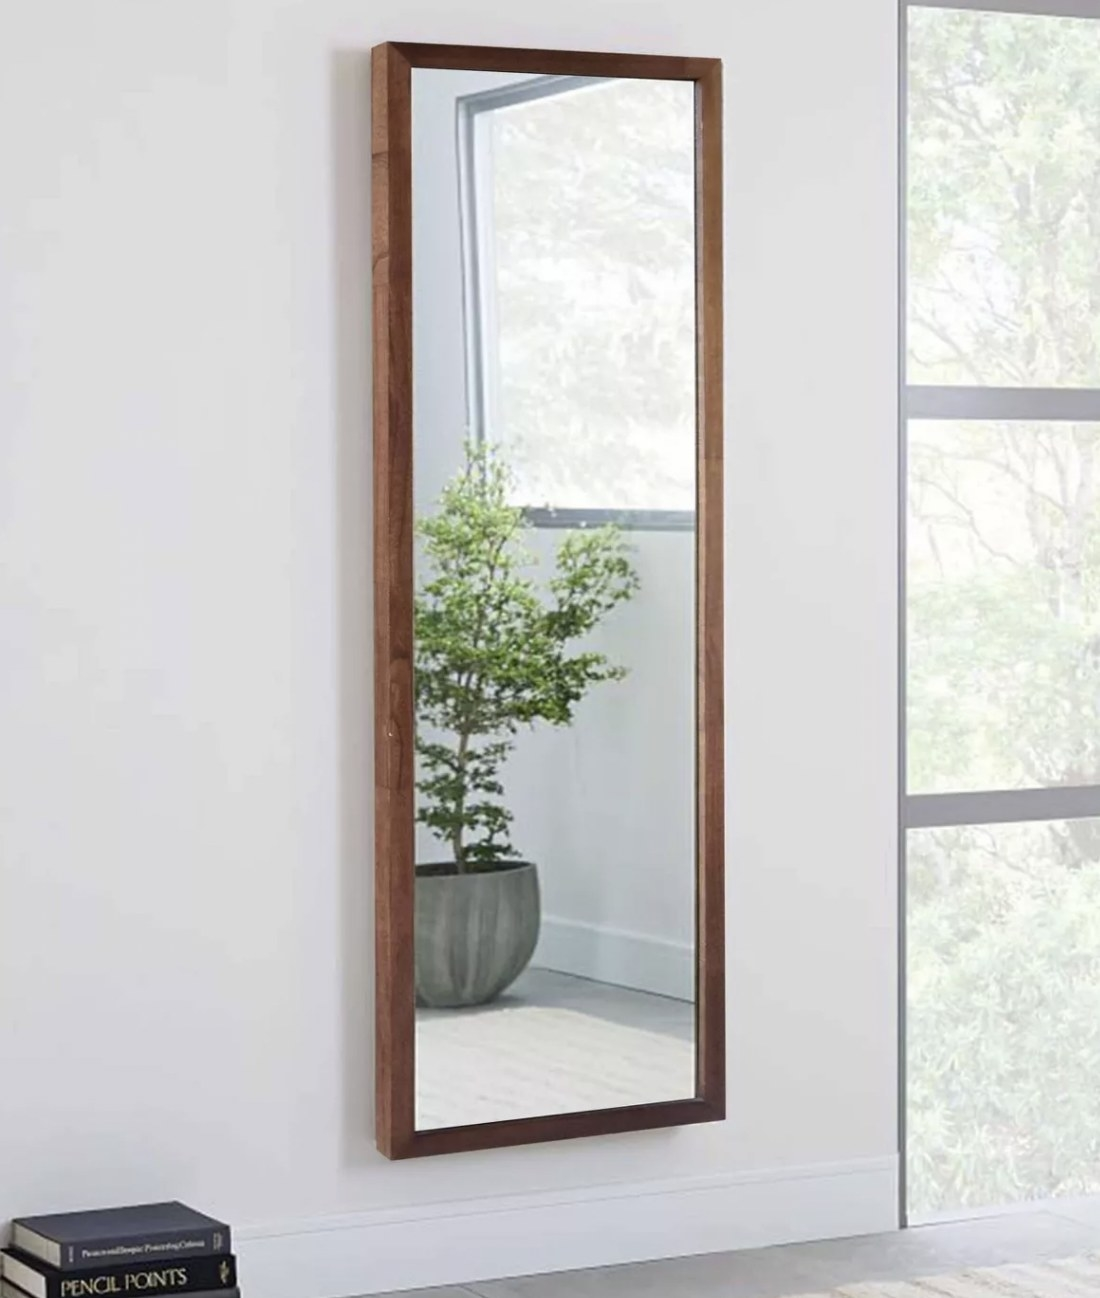 a fulll length mirror with a brown wooden frame hanging on a wall